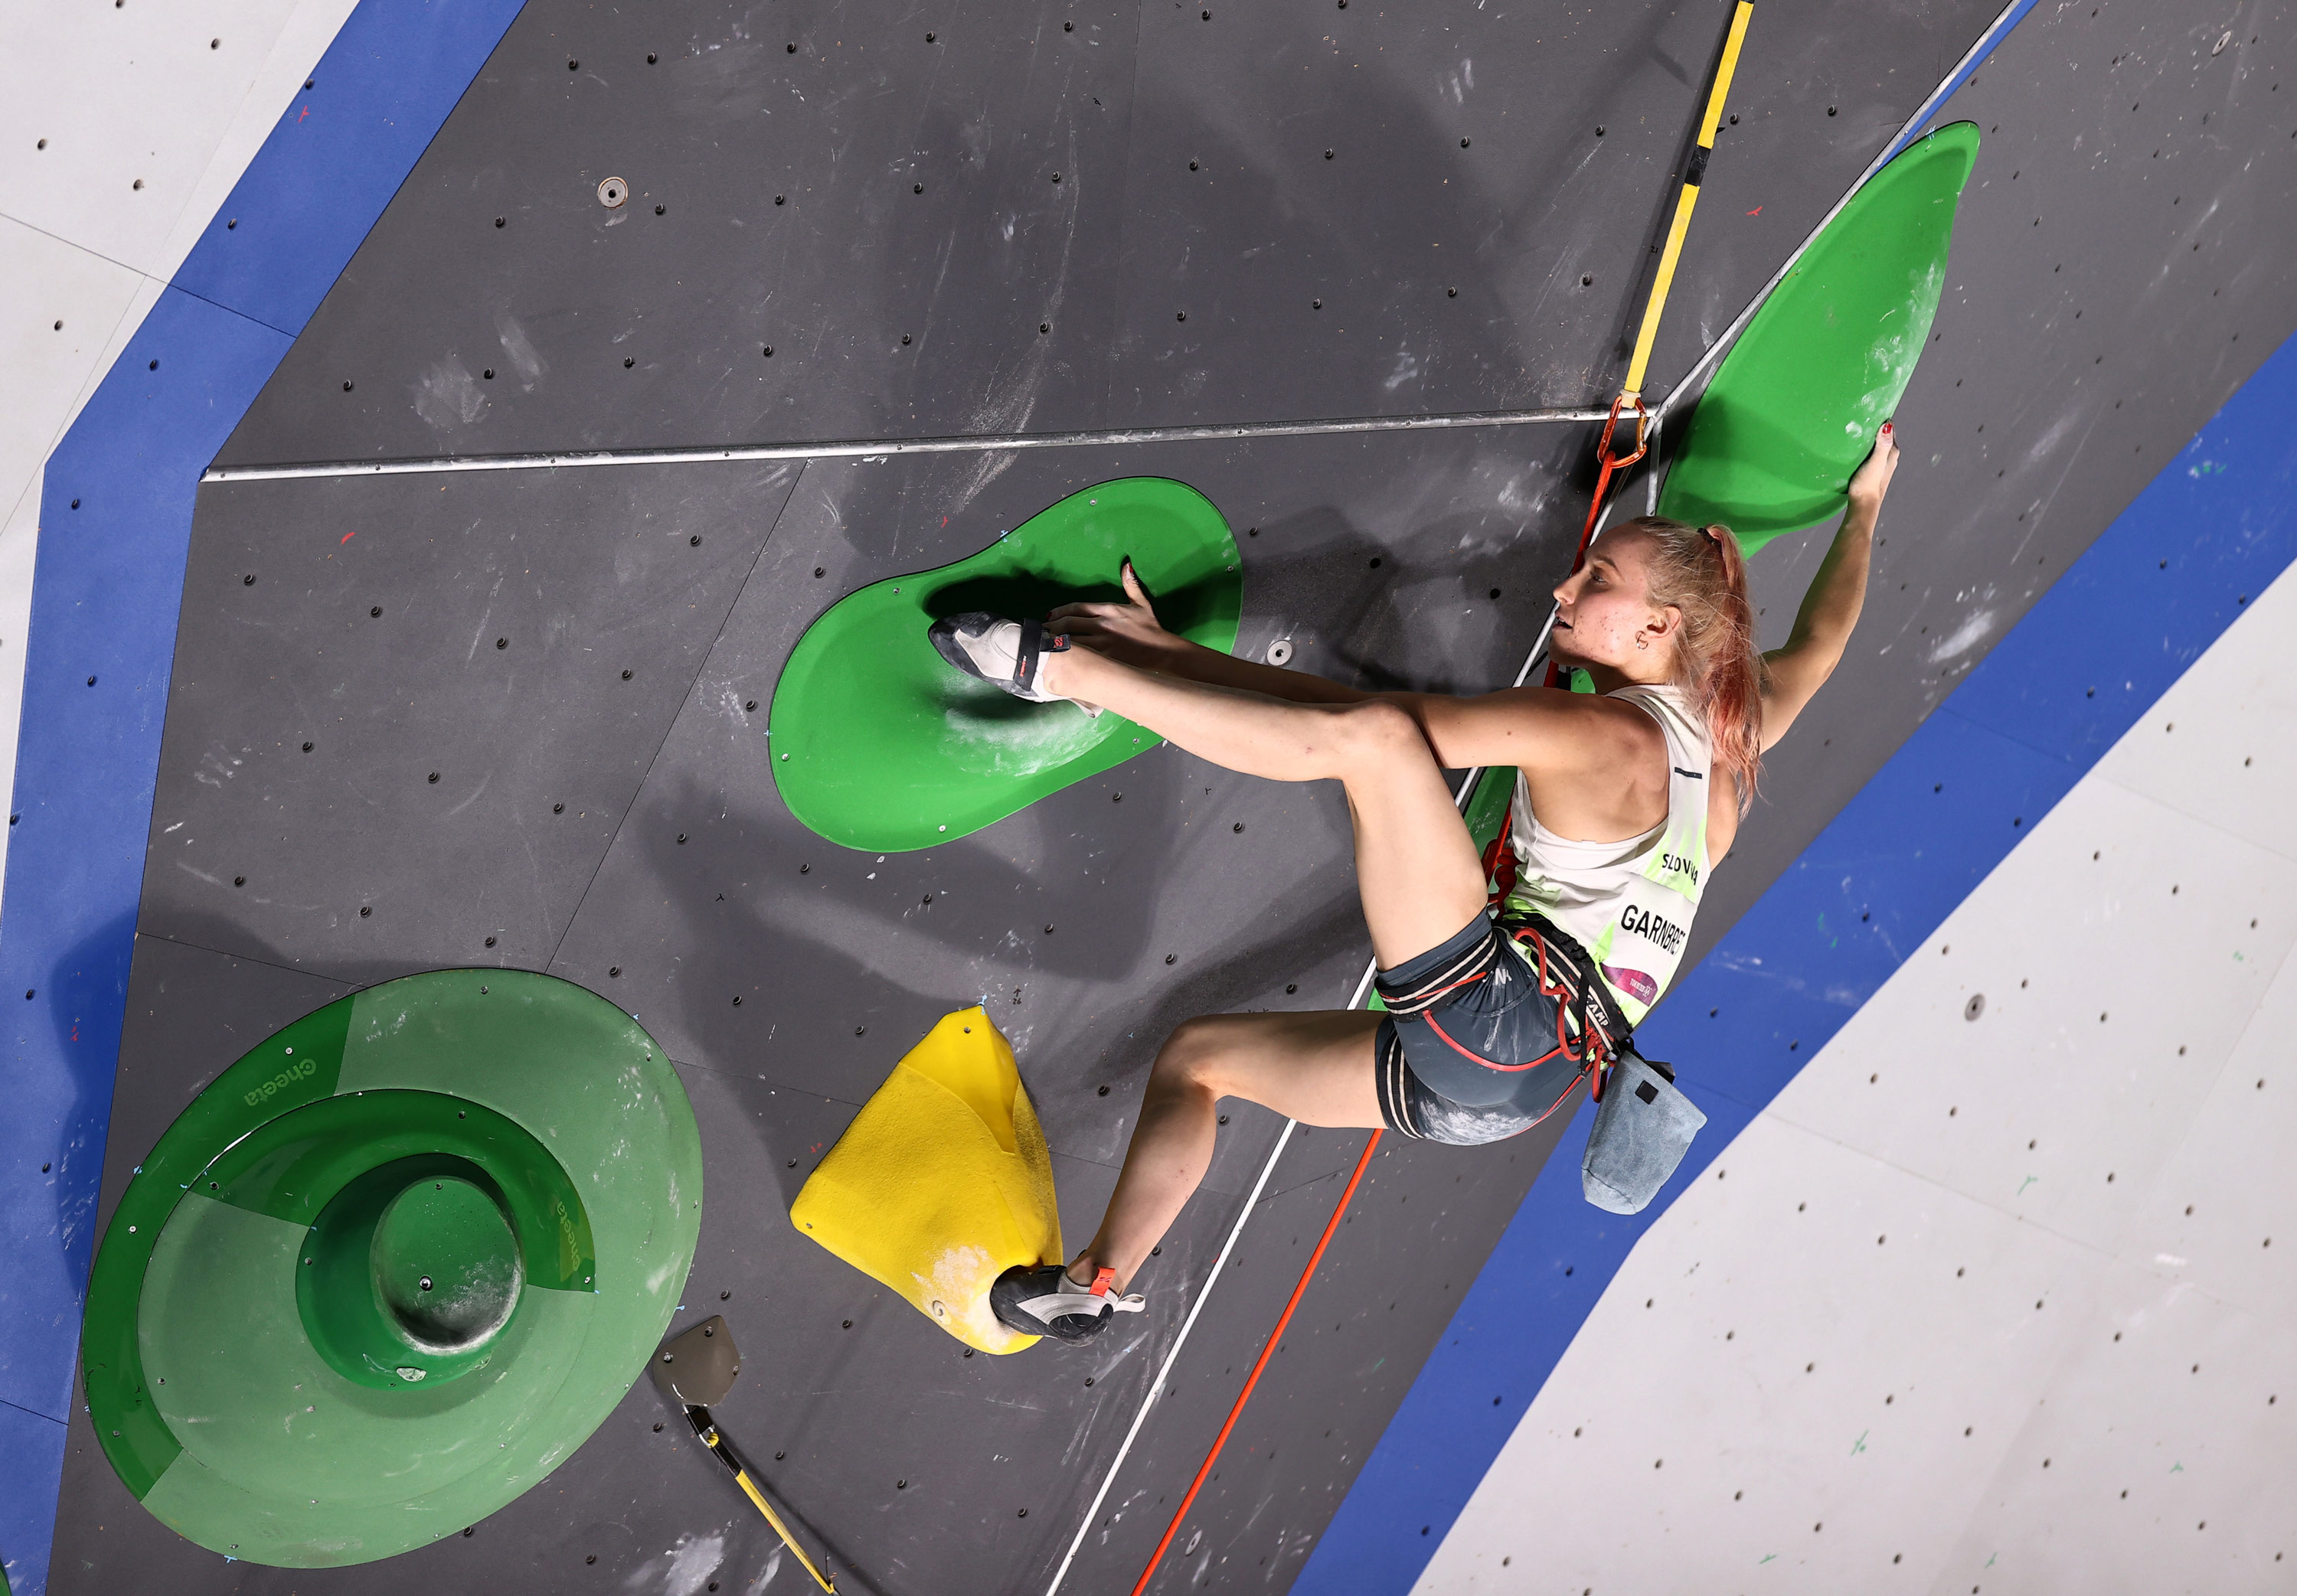 Slovenia's Janja Garnbret competes in the sport climbing combined final on August 6.